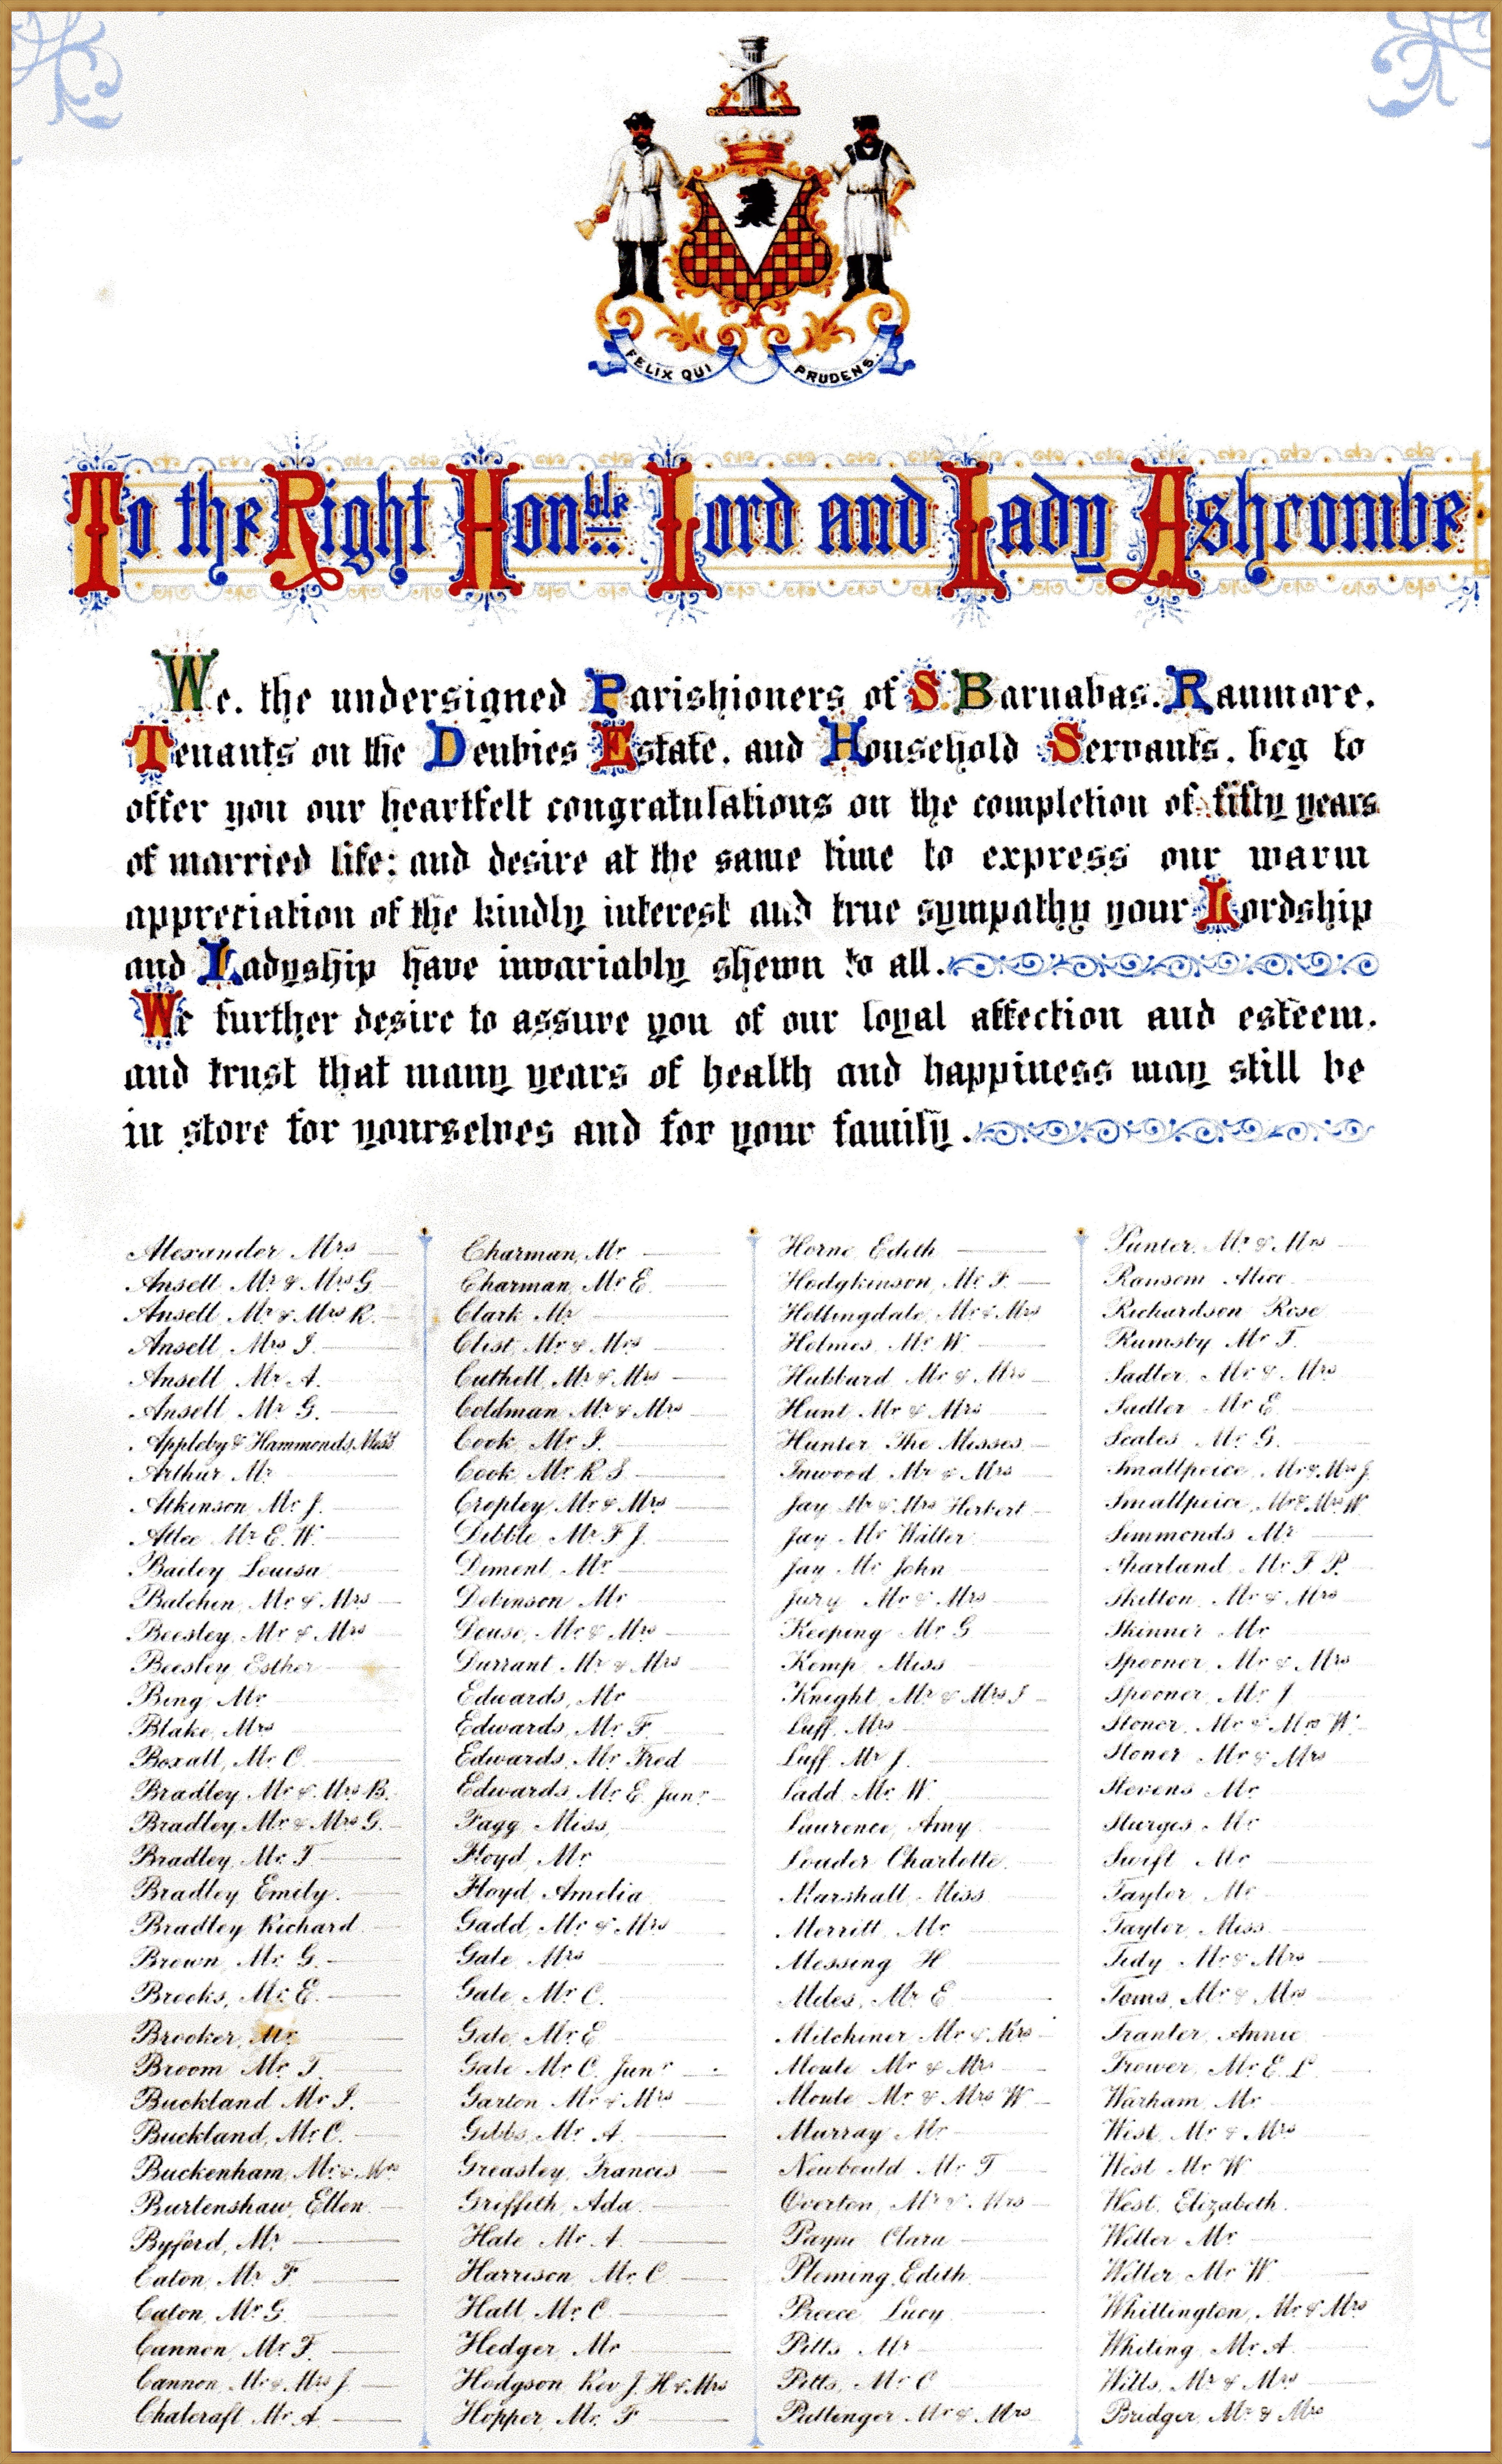 Illuminated scroll presented to George and Laura Cubitt, on the occasion of their Golden Wedding